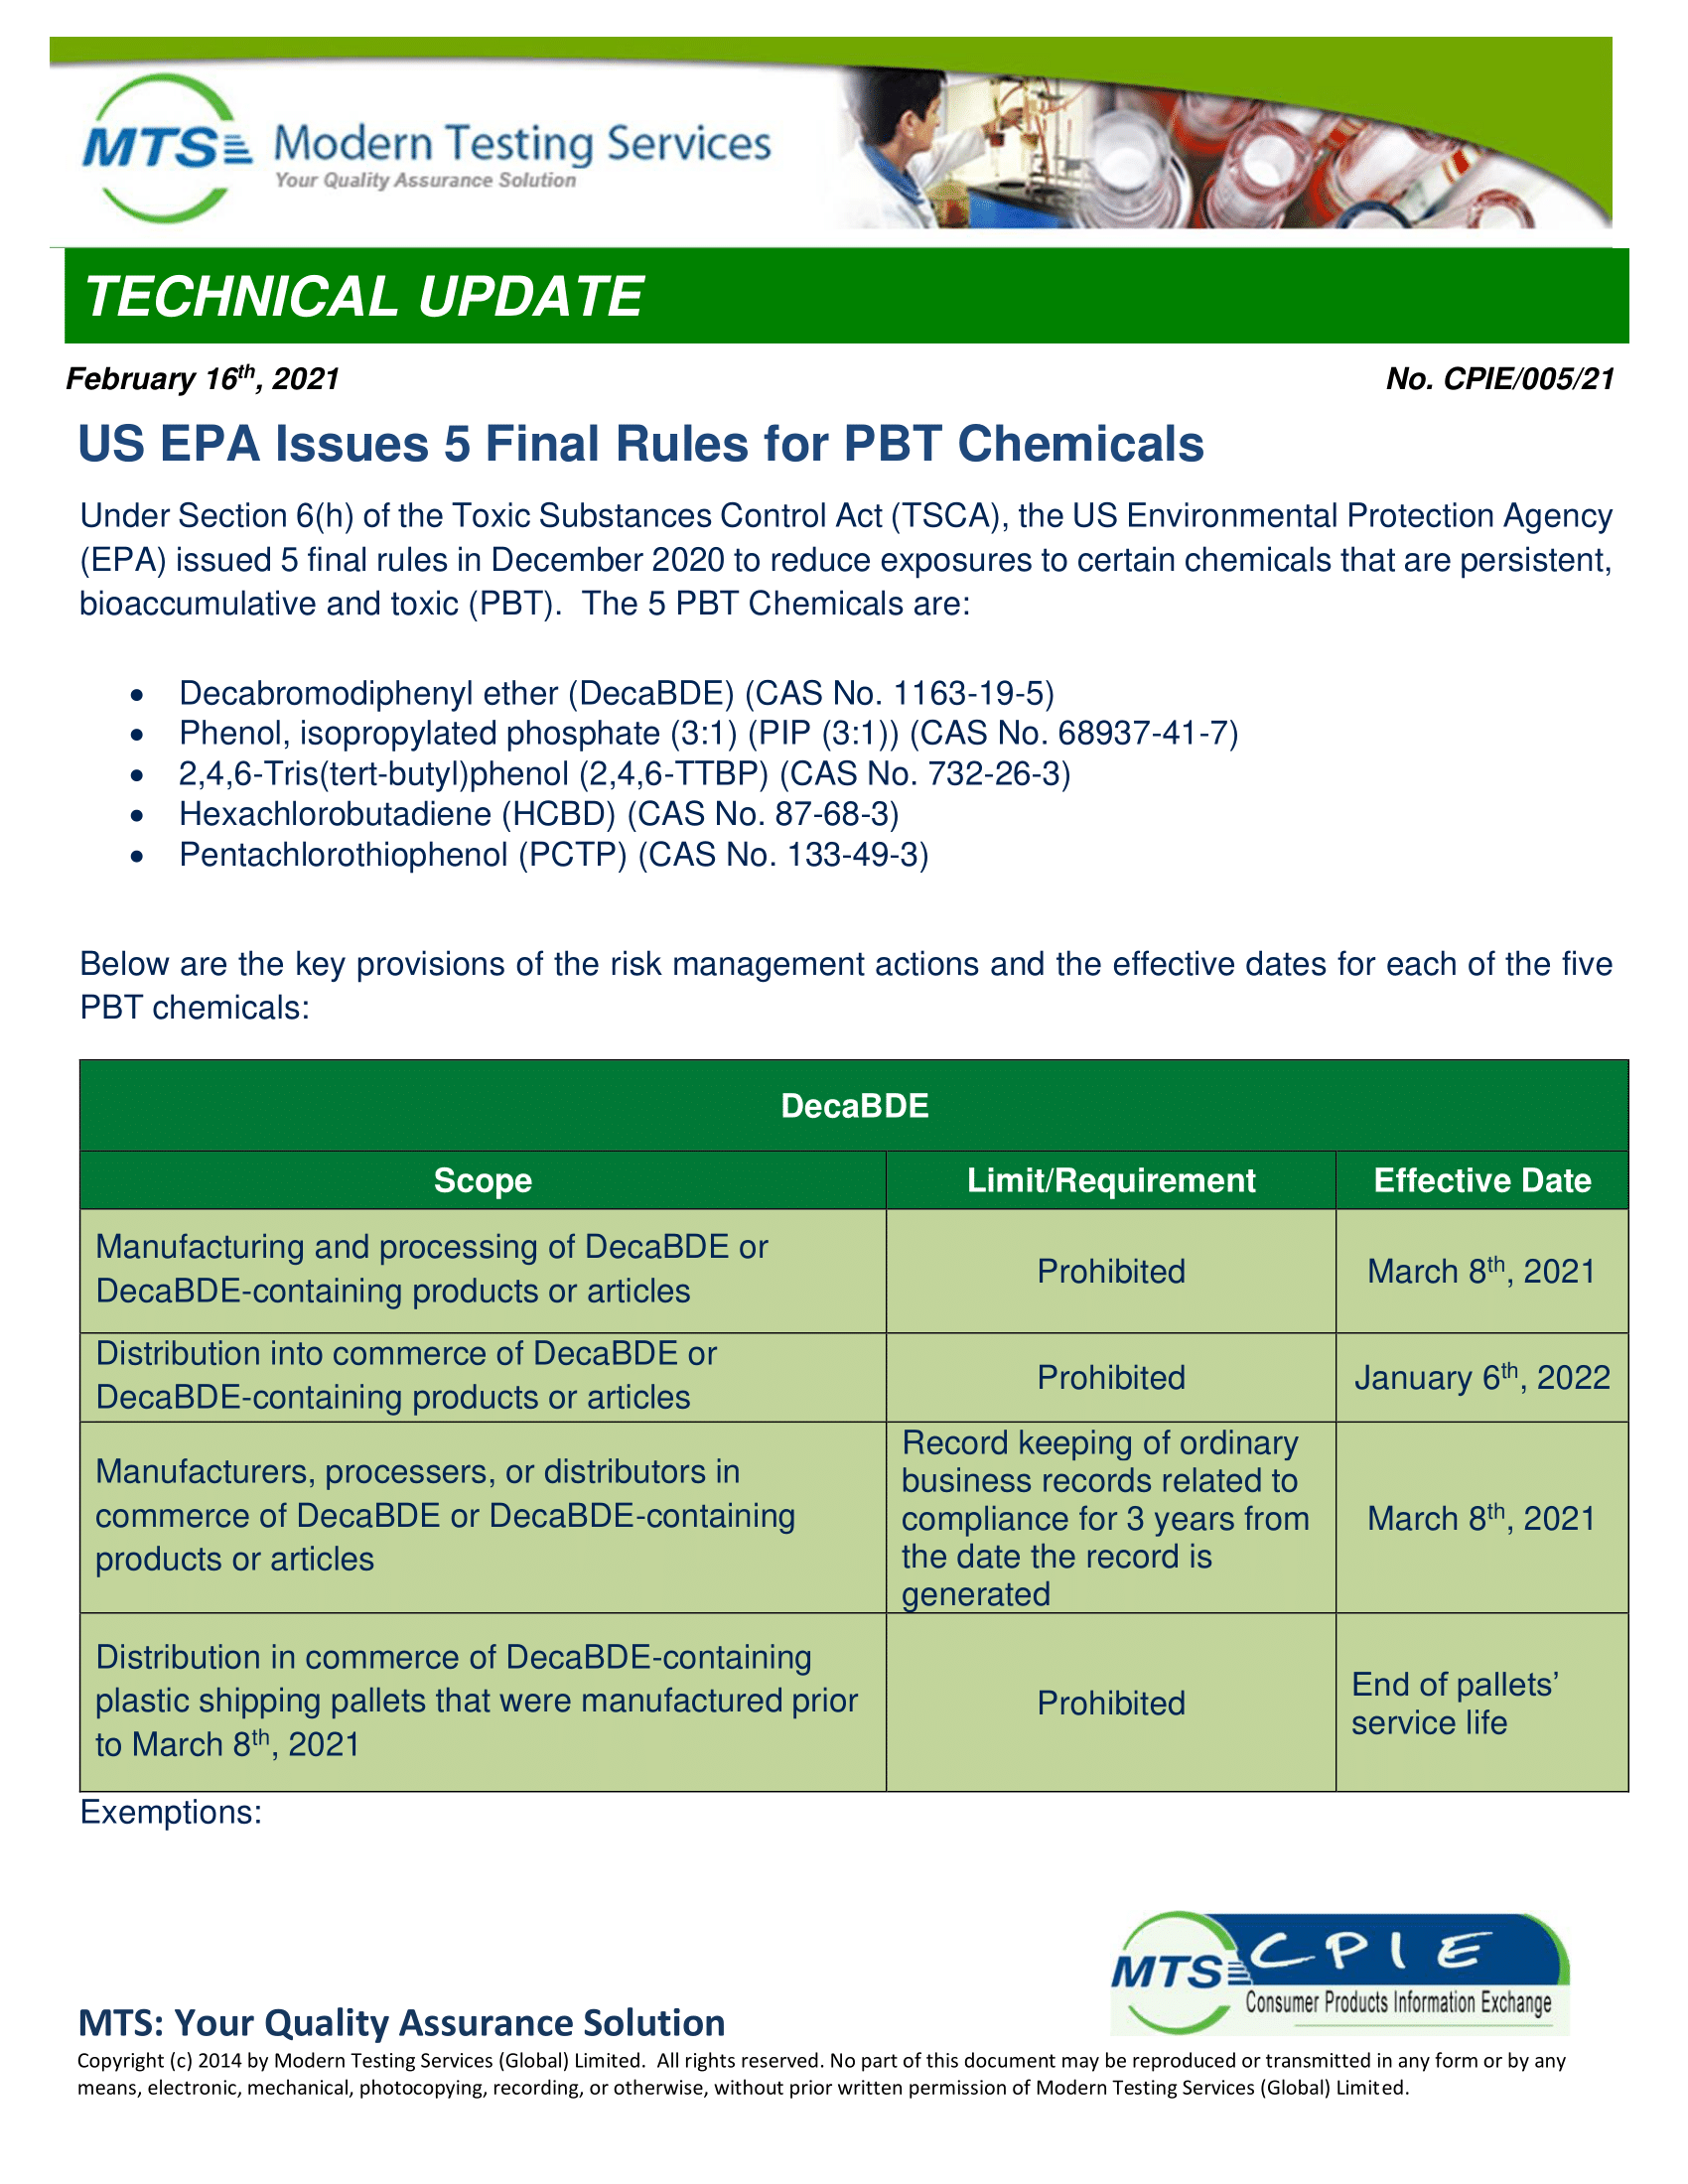 CPIE-005-21 US EPA Issues 5 Final Rules for PBT Chemicals-1